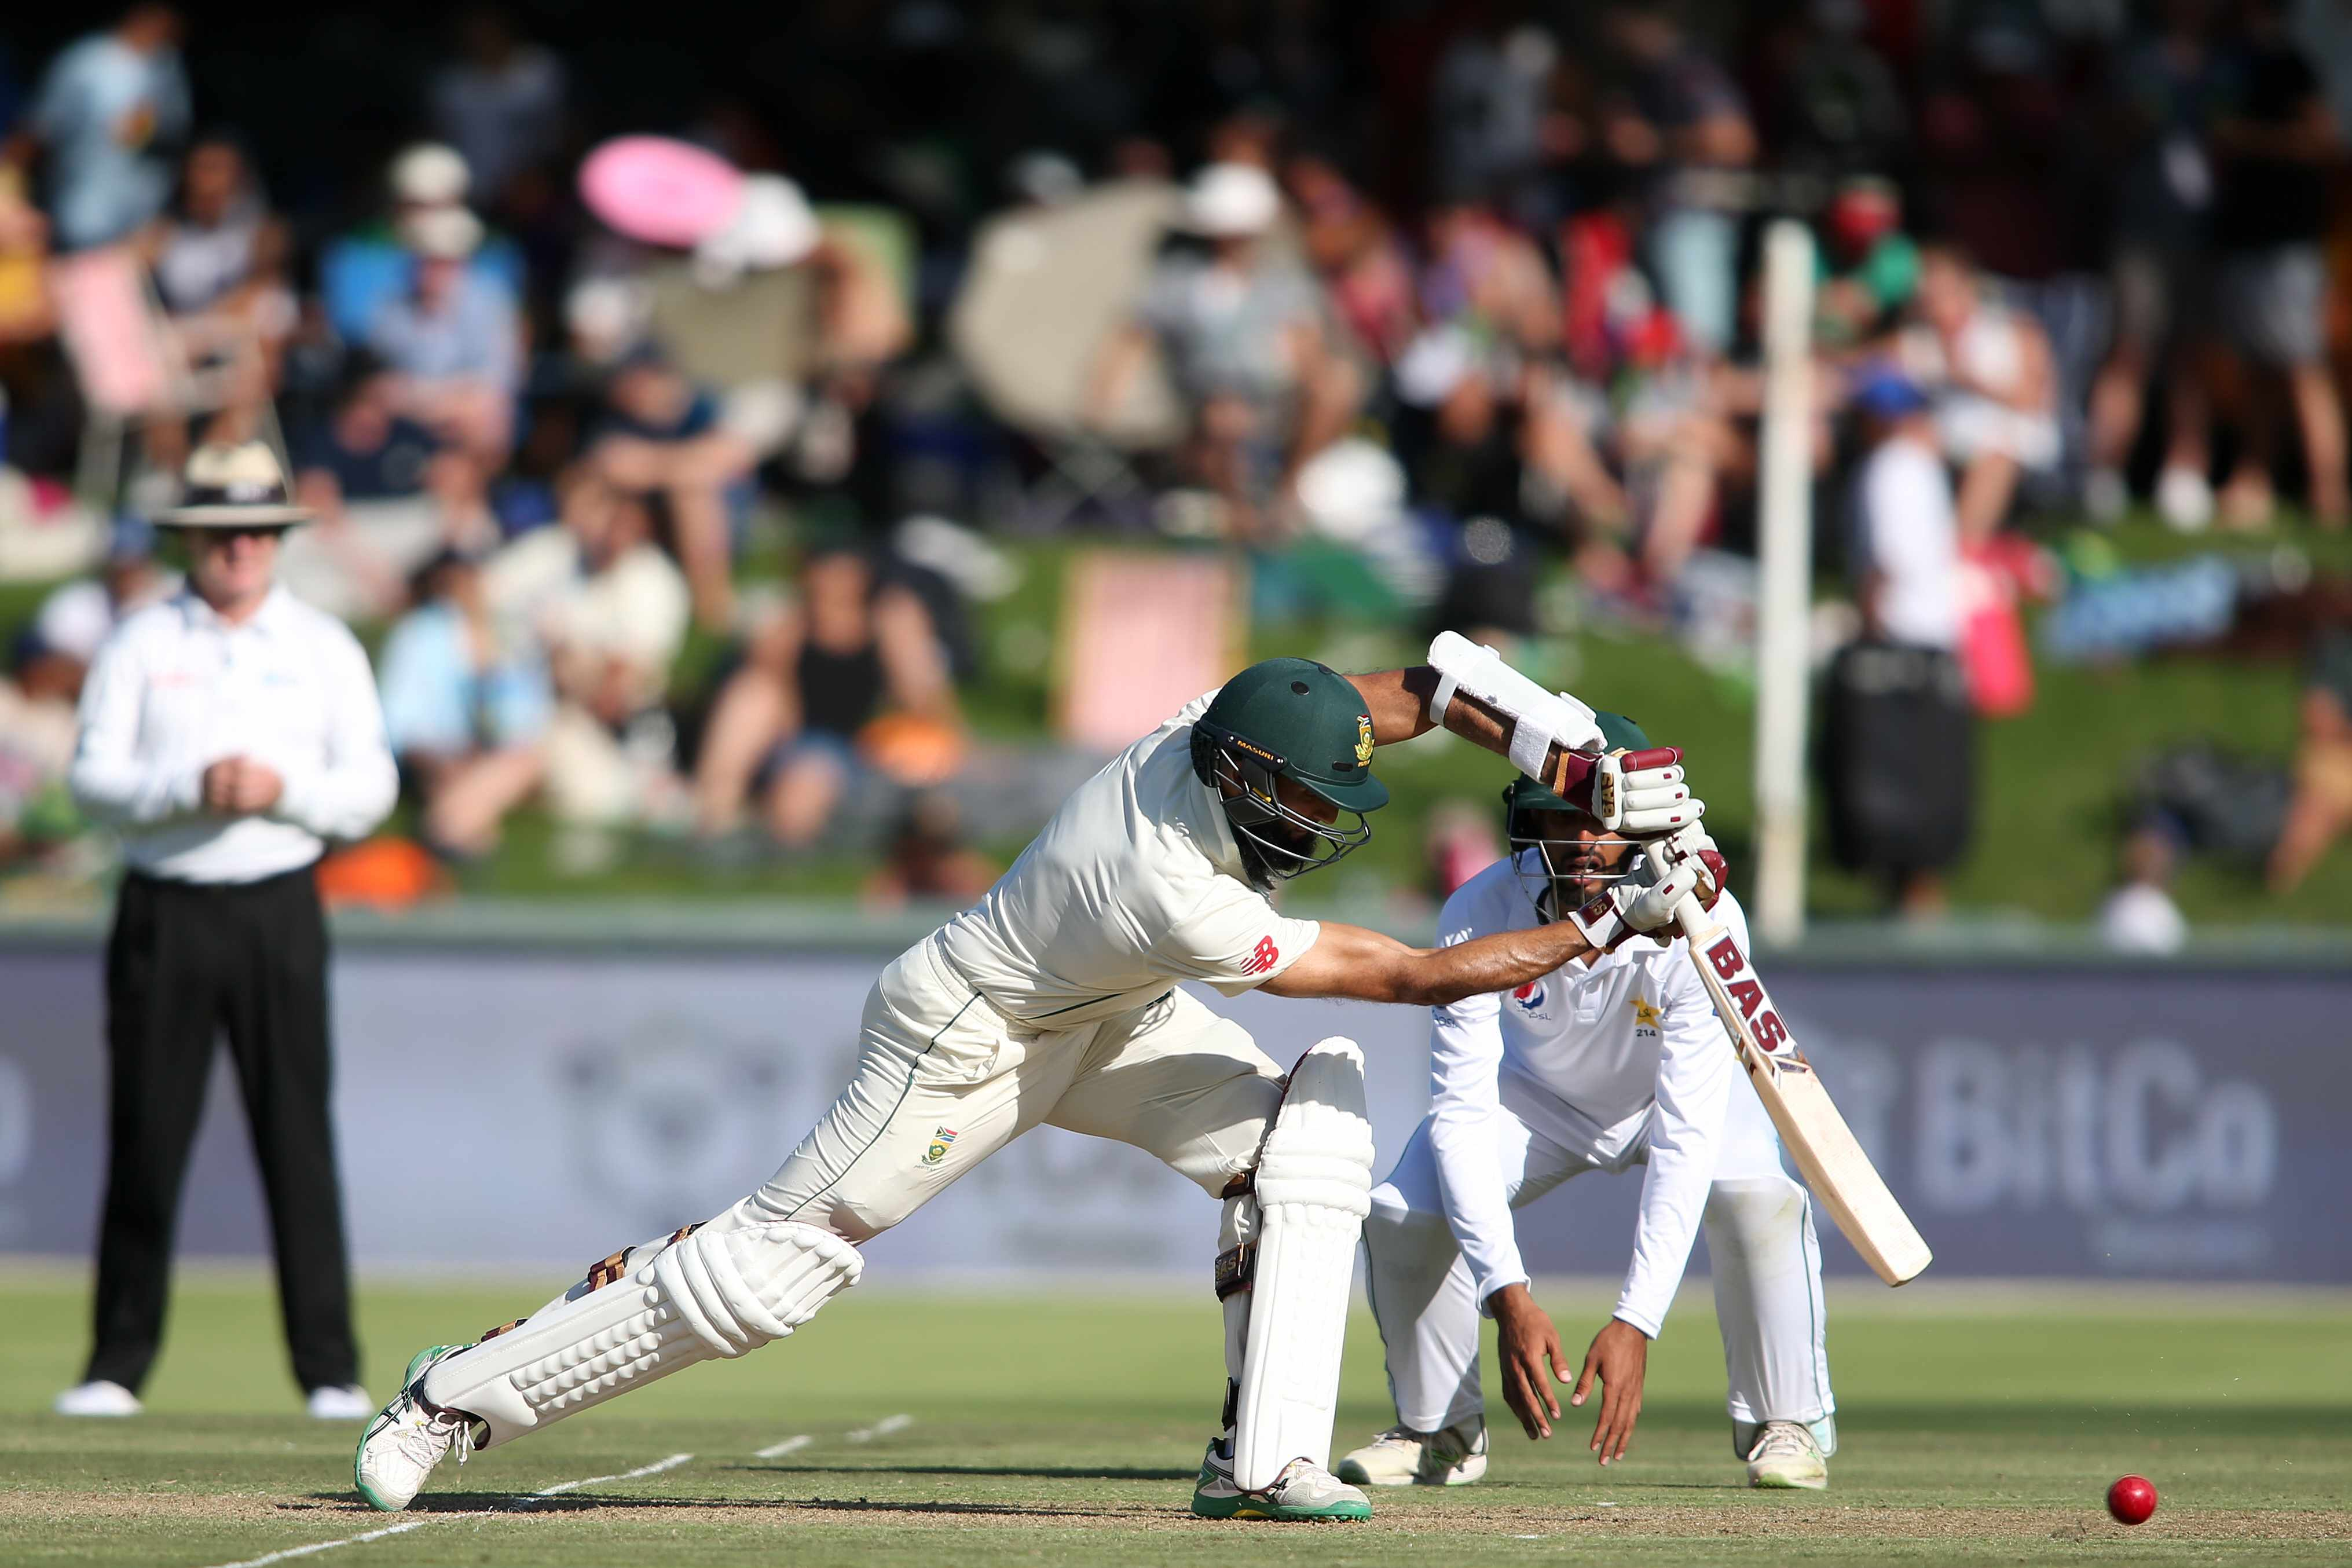 CAPE TOWN, SOUTH AFRICA - JANUARY 03: Hashim Amla of South Africa drives a delivery during day 1 of the 2nd Castle Lager Test match between South Africa and Pakistan at PPC Newlands on January 03, 2019 in Cape Town, South Africa. (Photo by Shaun Roy/Gallo Images/ Getty Images)